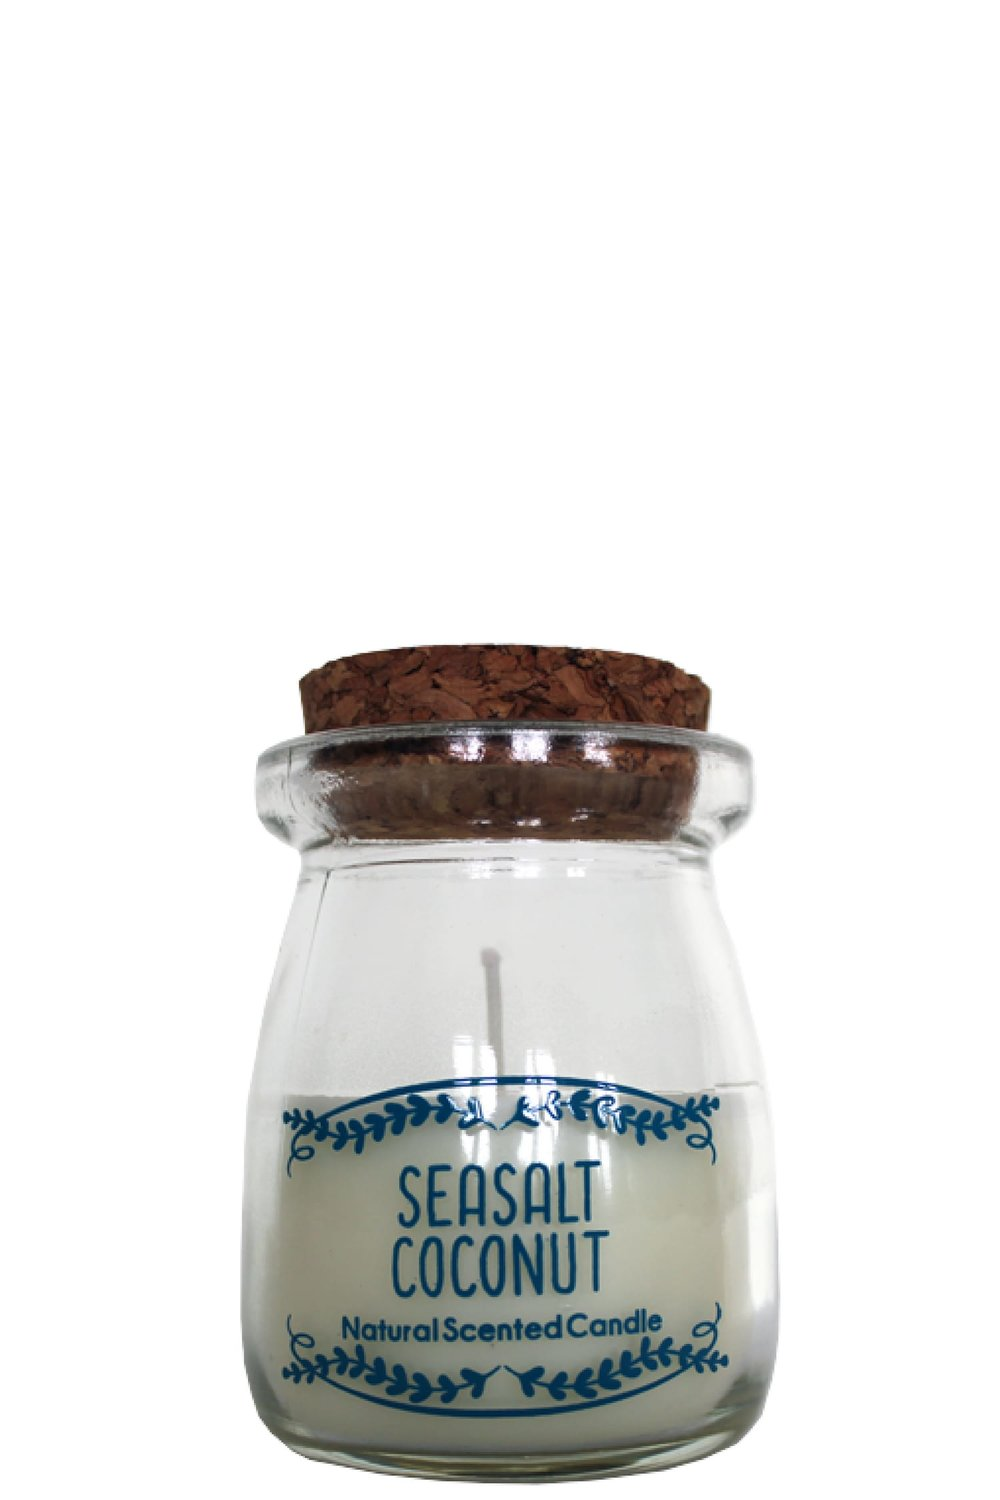 Seasalt Coconut Fragrance.A beautifully scented candle set within a mini mason style jar with a cork lid.